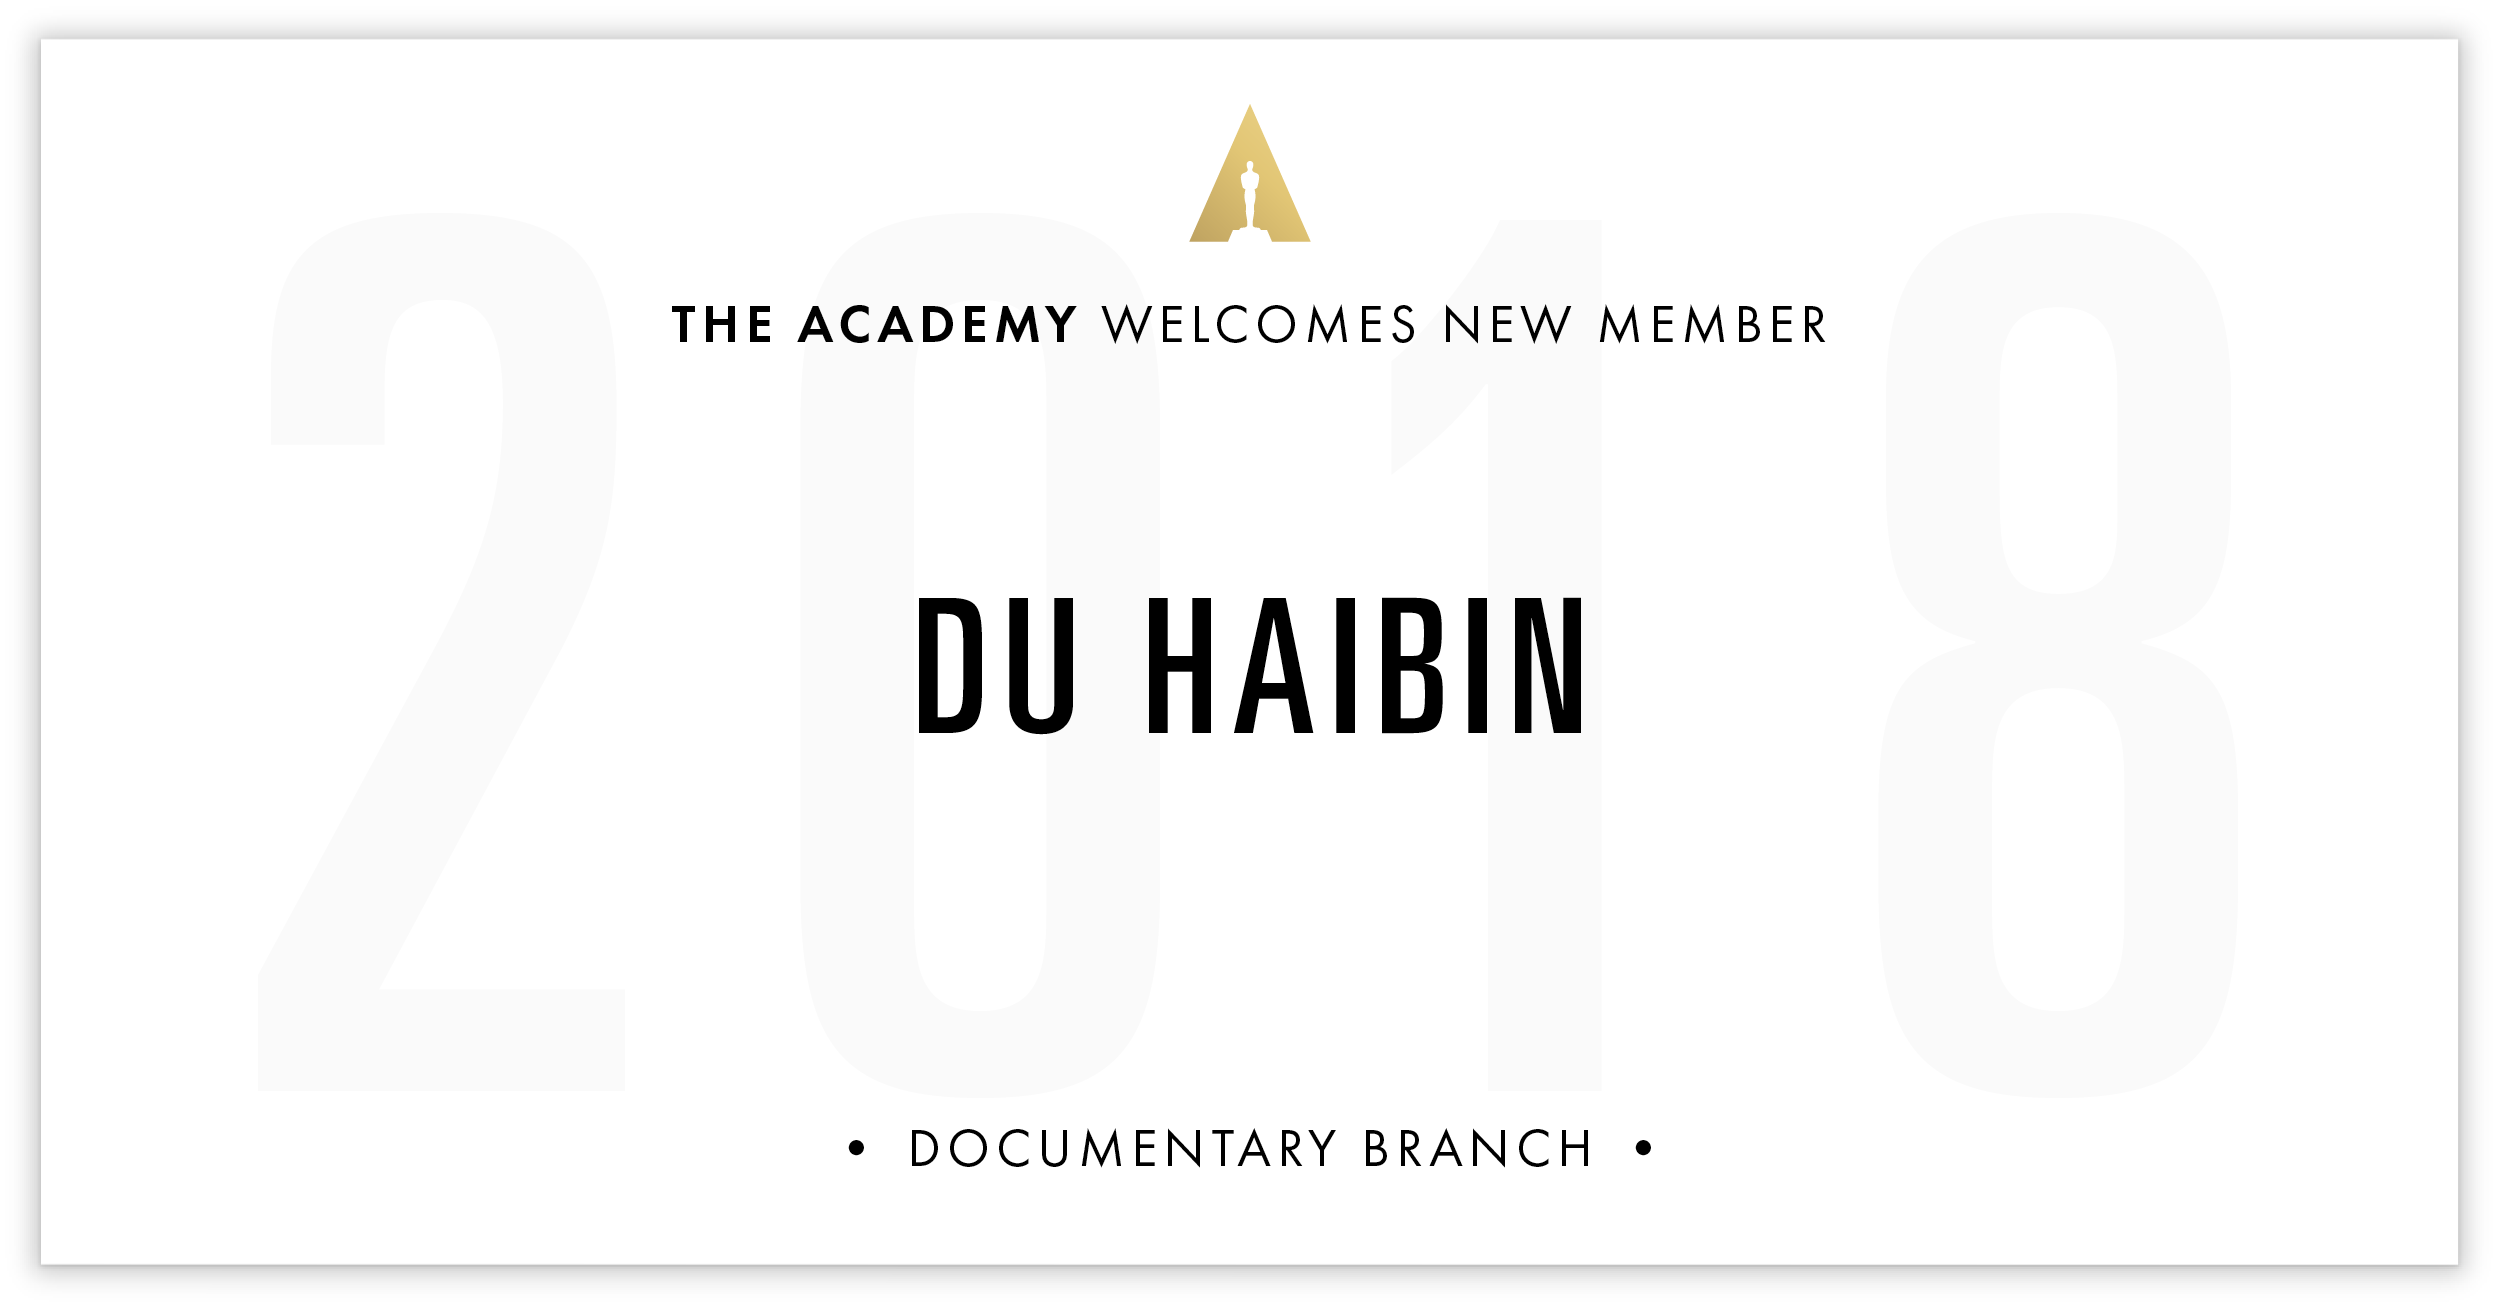 Du Haibin is invited!